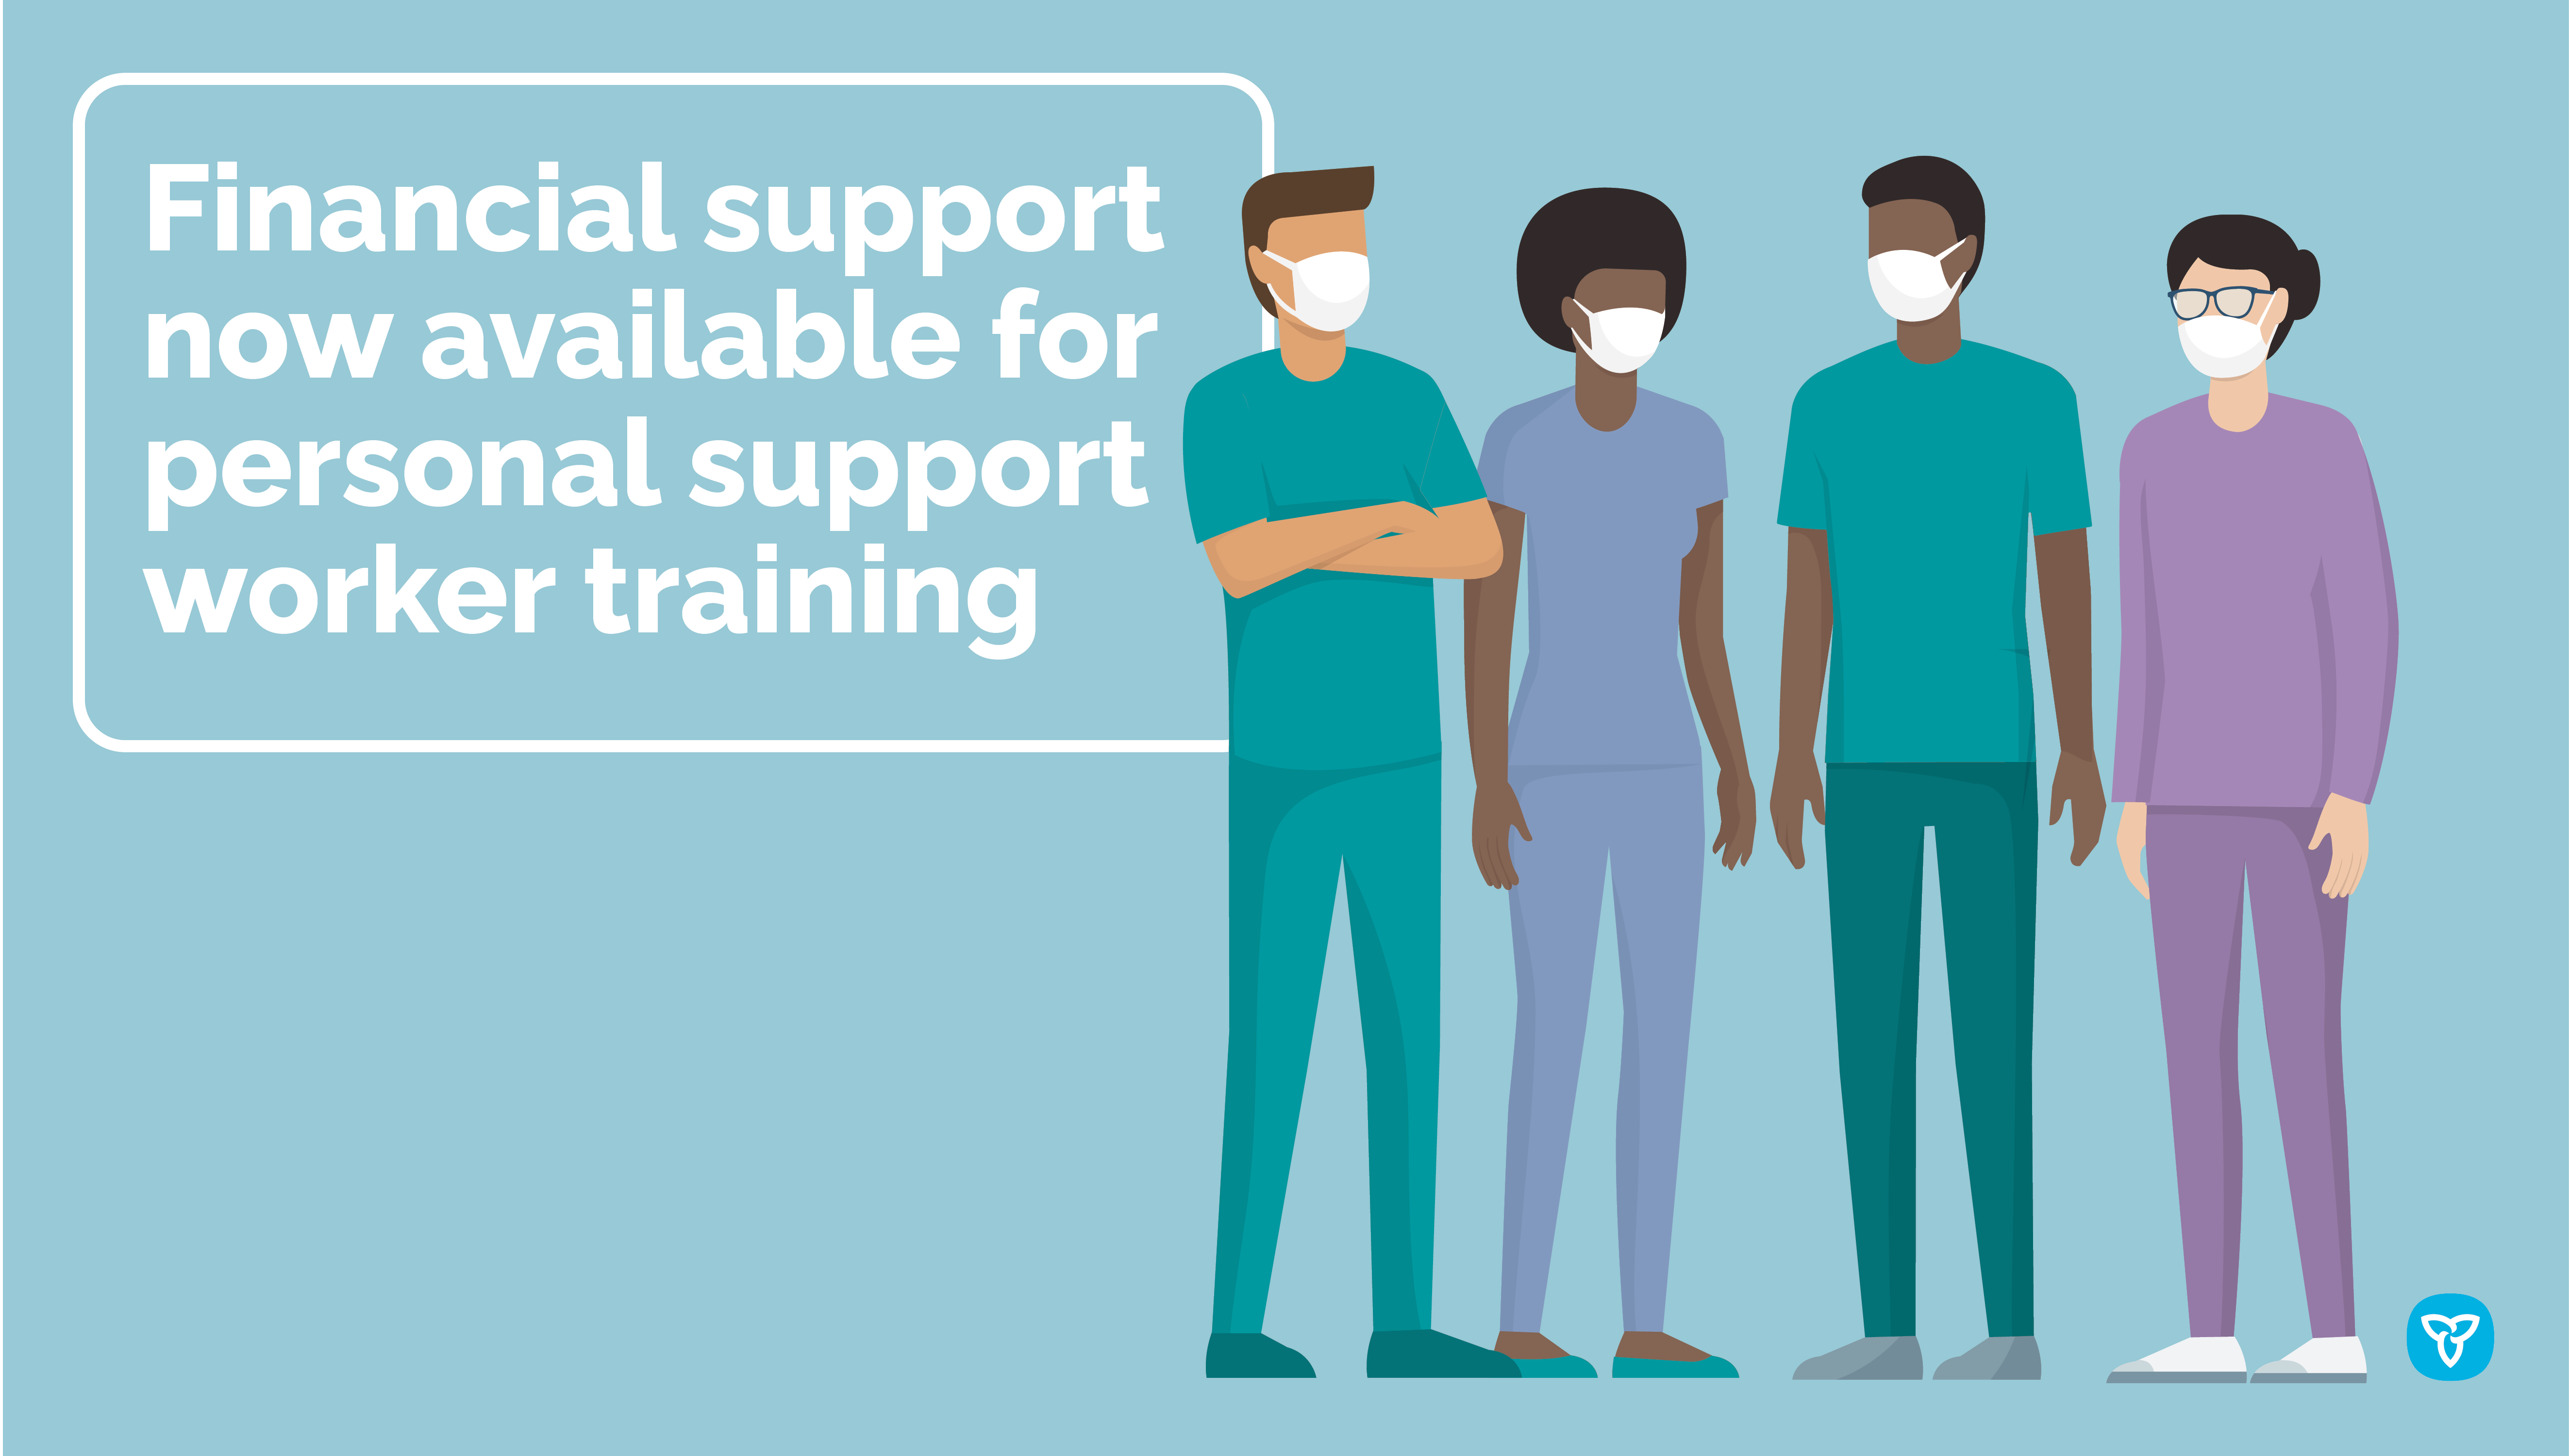 Ontario Helps Train More Personal Support Workers